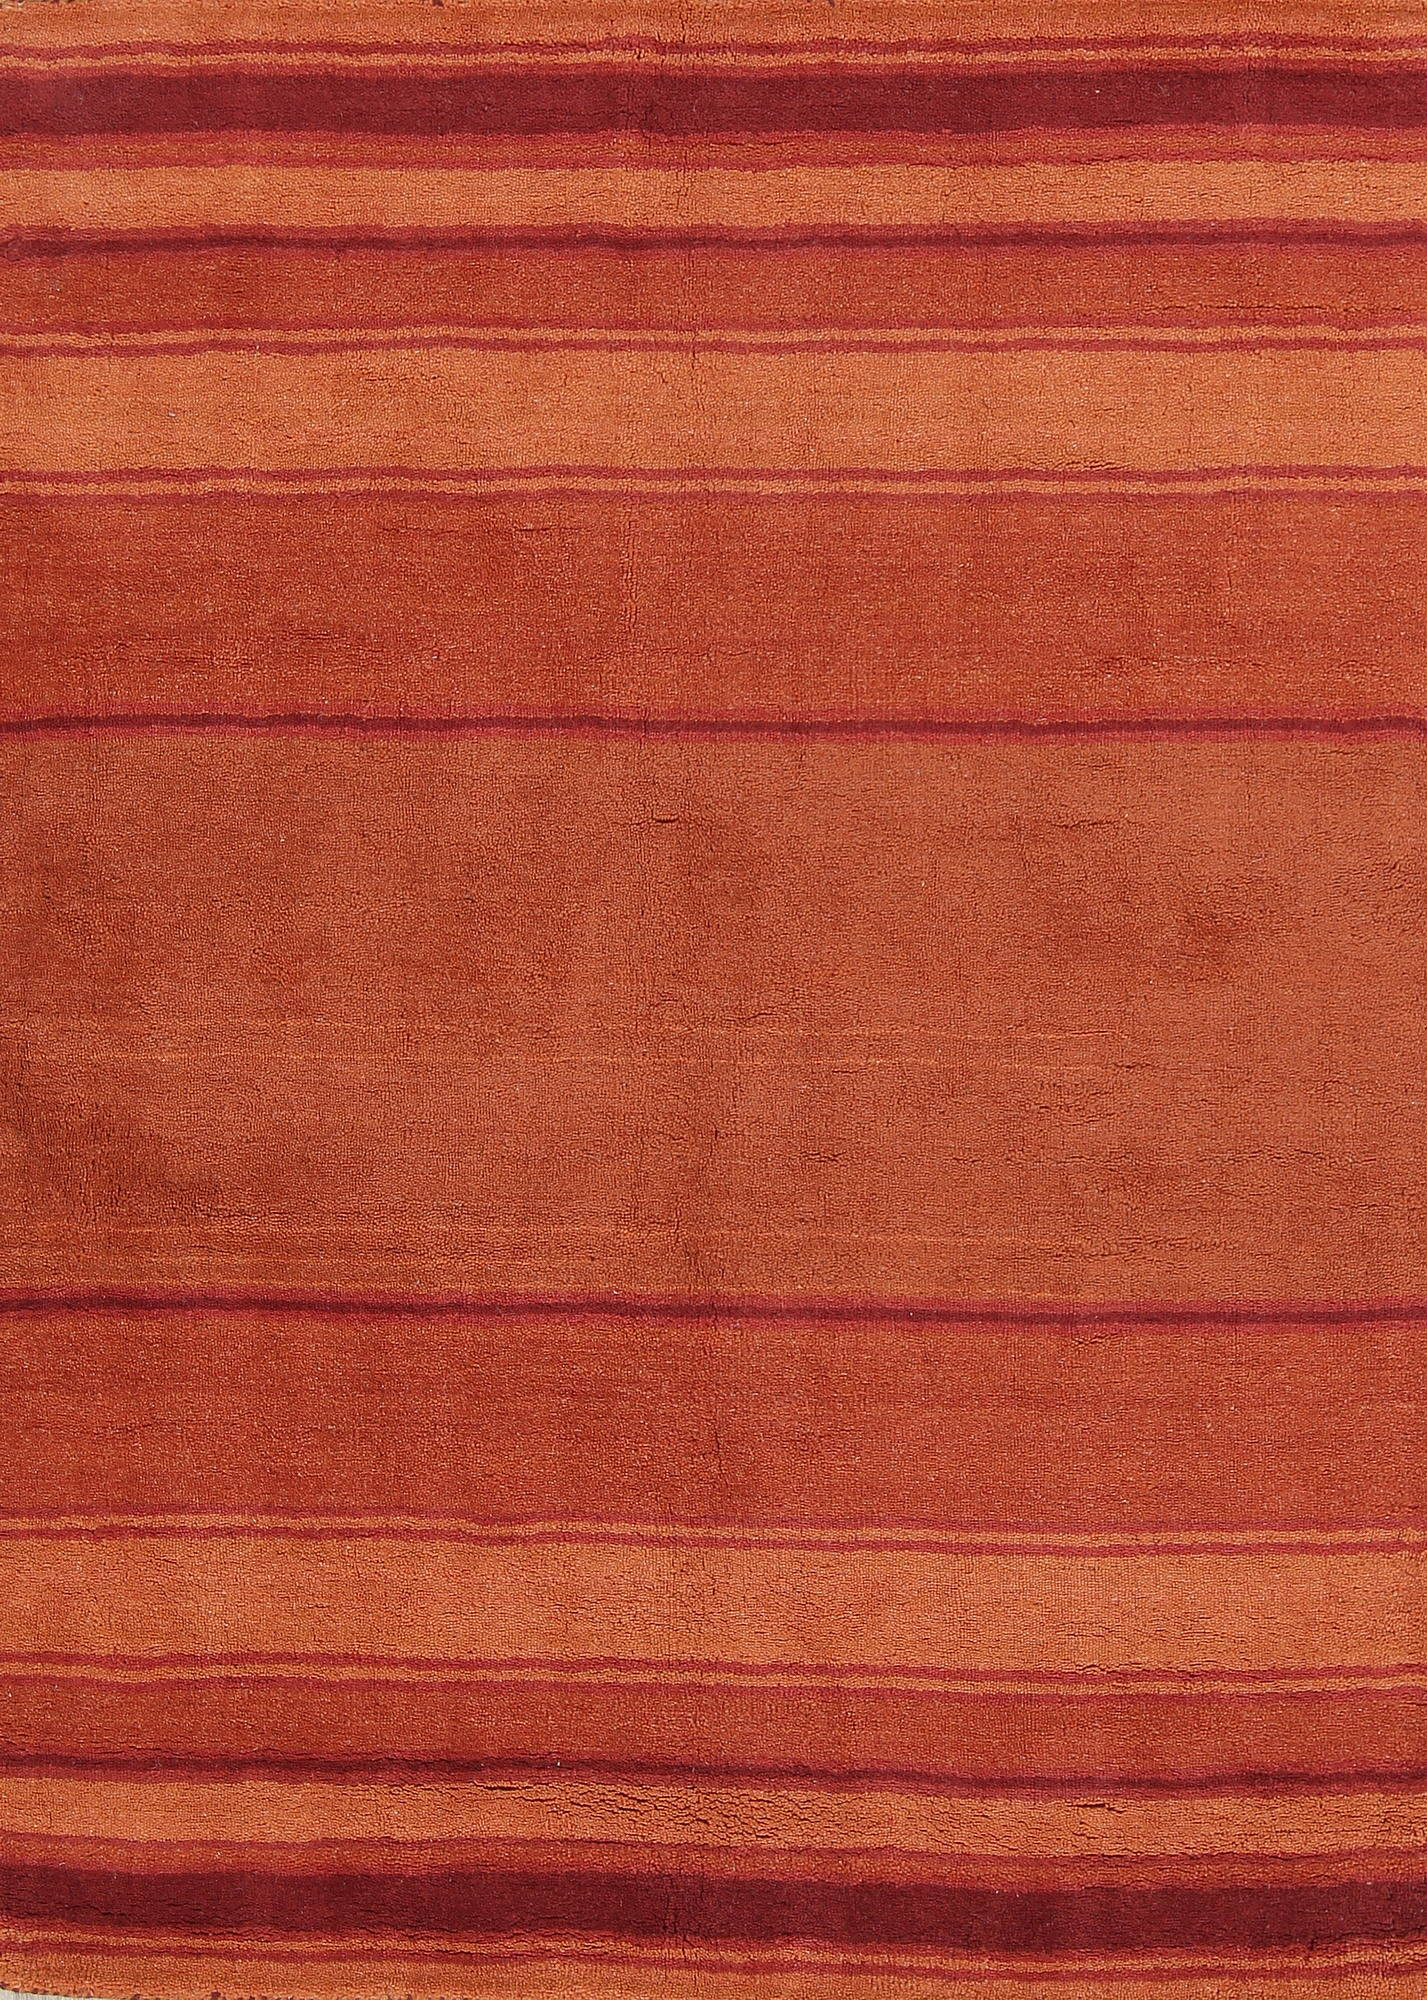 Contemporary Tufted Indian Oriental Area Rug 5x7